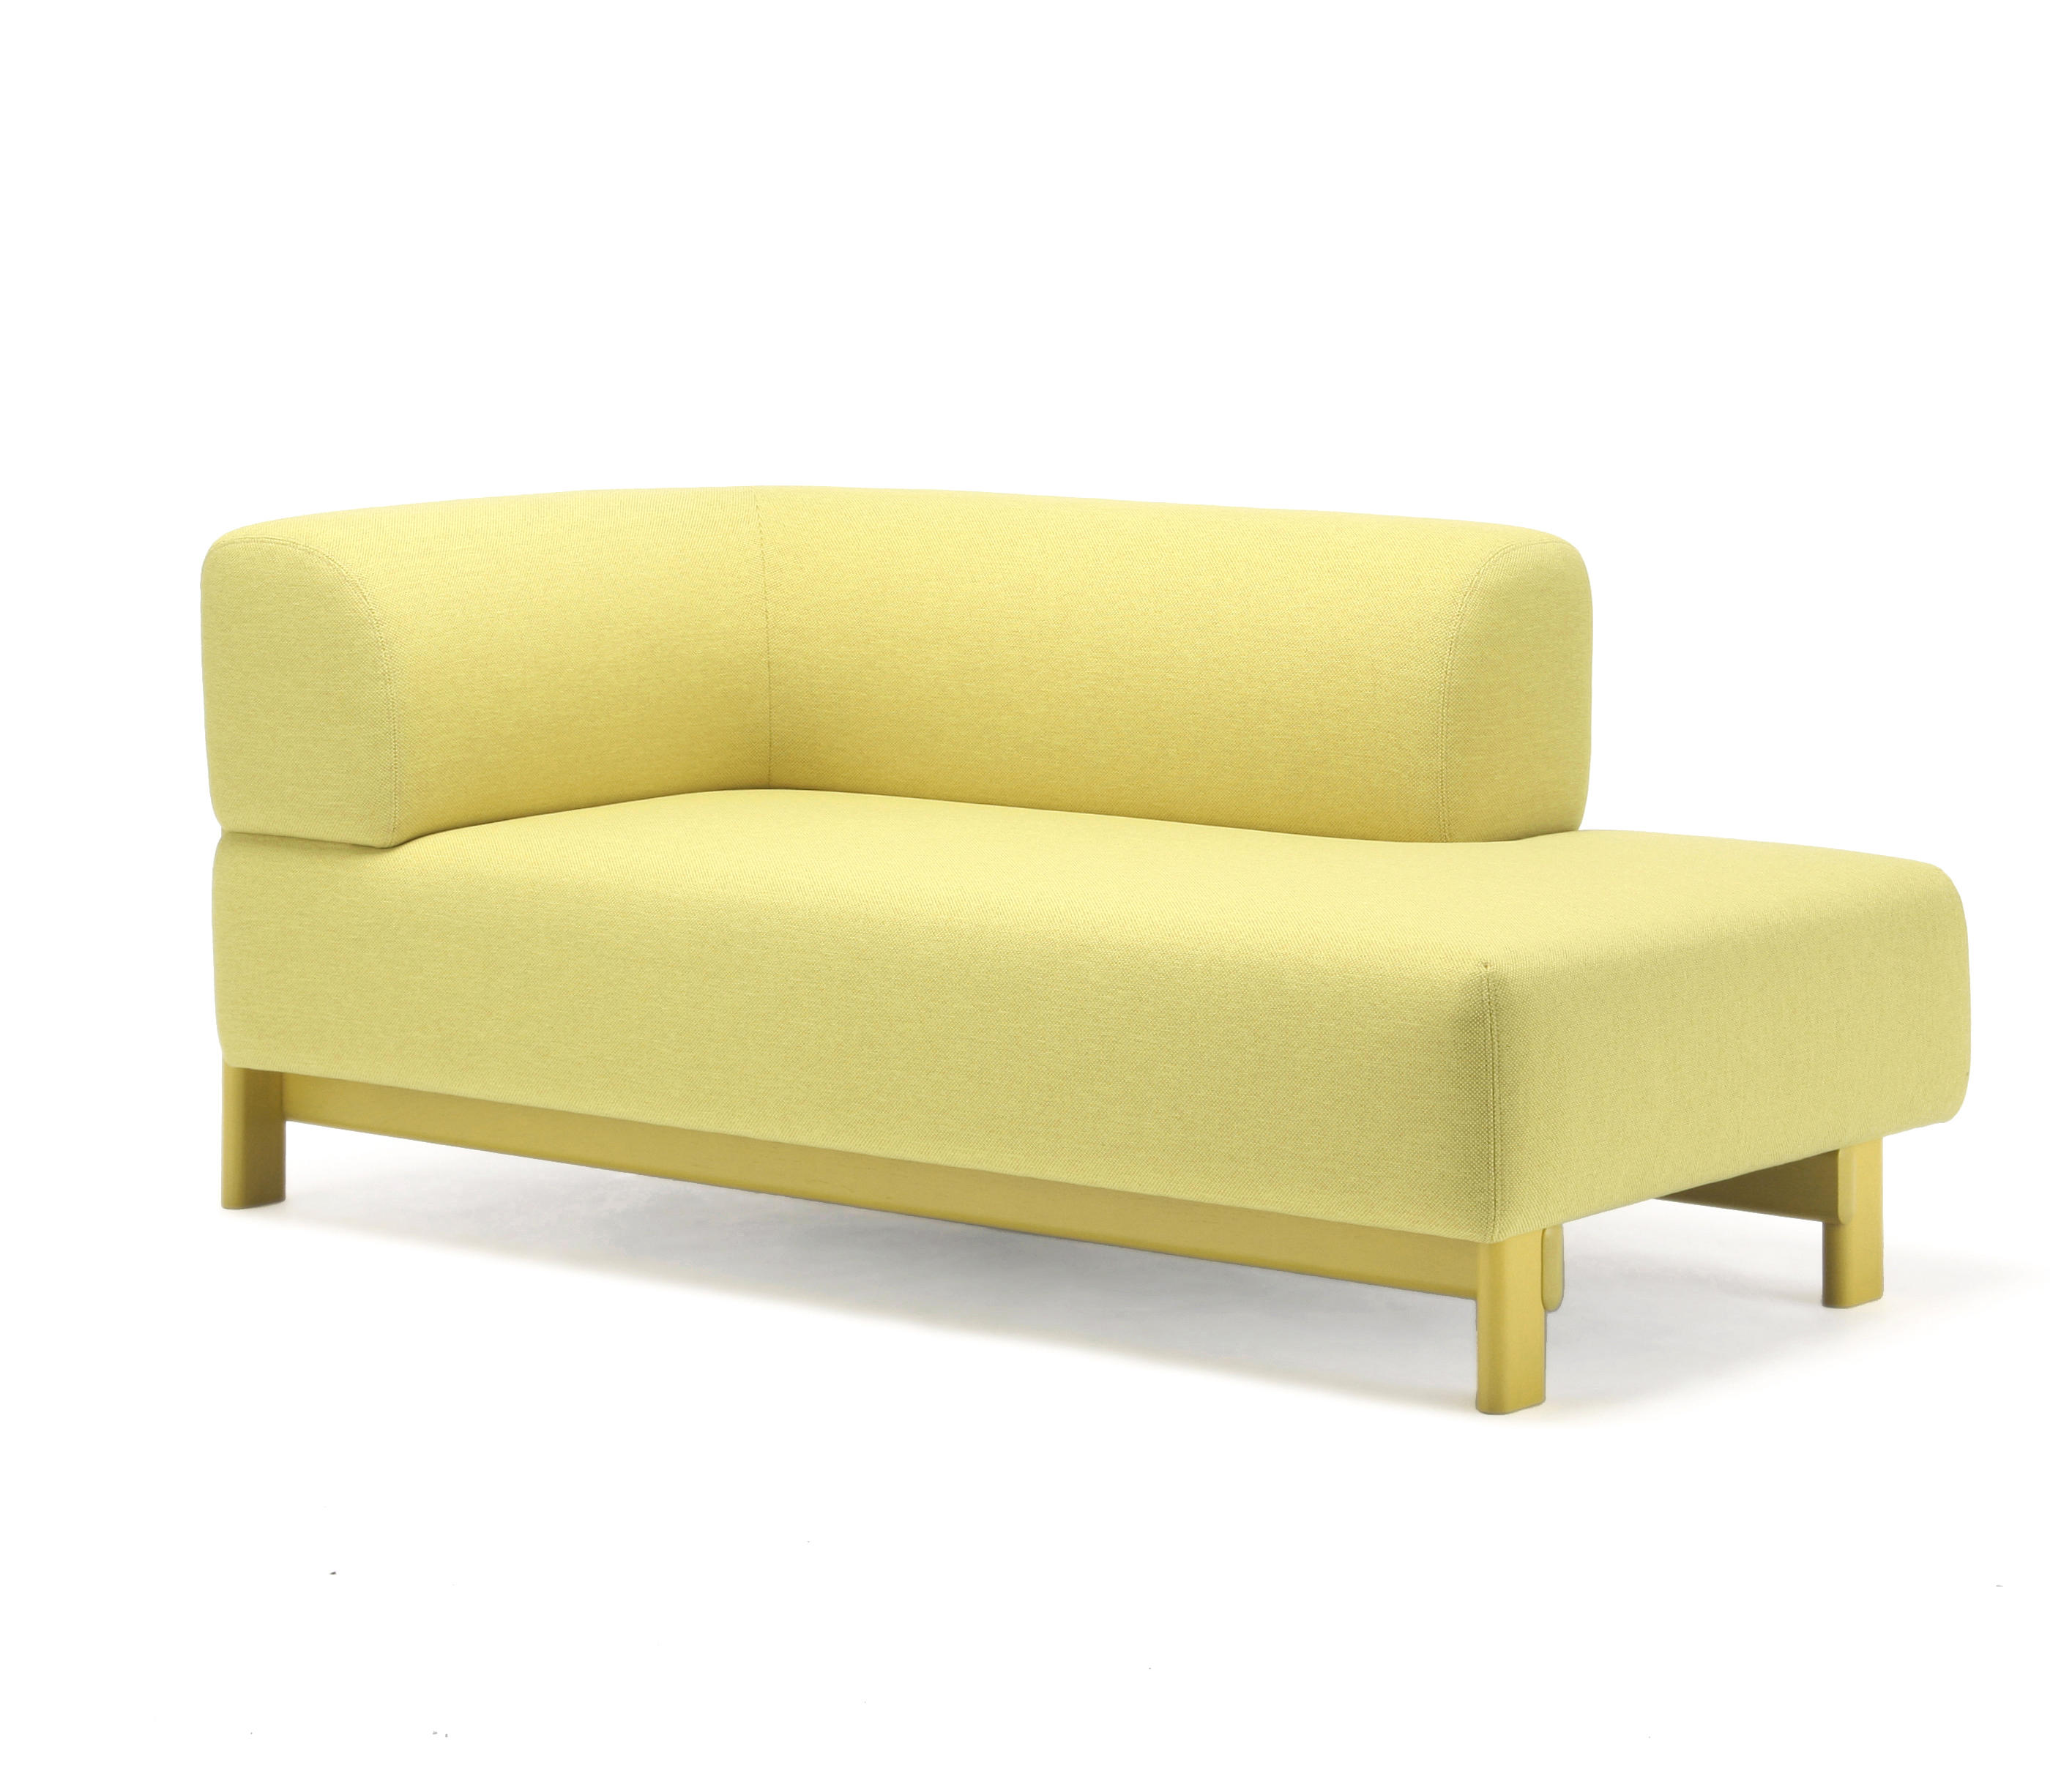 Elephant sofa chaise longue l recamieres from karimoku for Chaise longue manufacturers